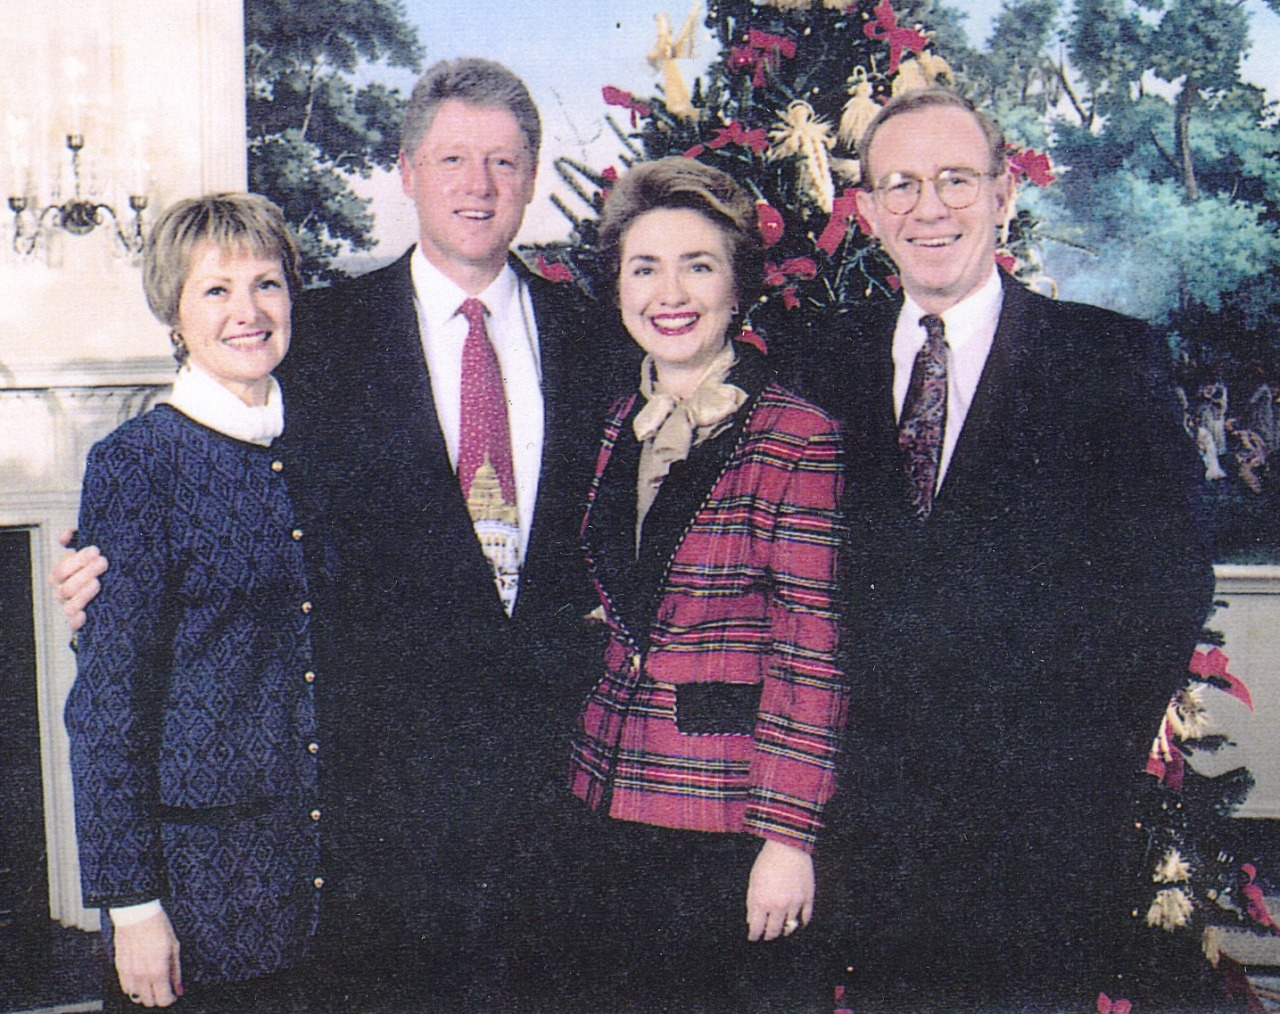 Mary Leonard and her husband Gregg Ramshaw with the Clinton couple